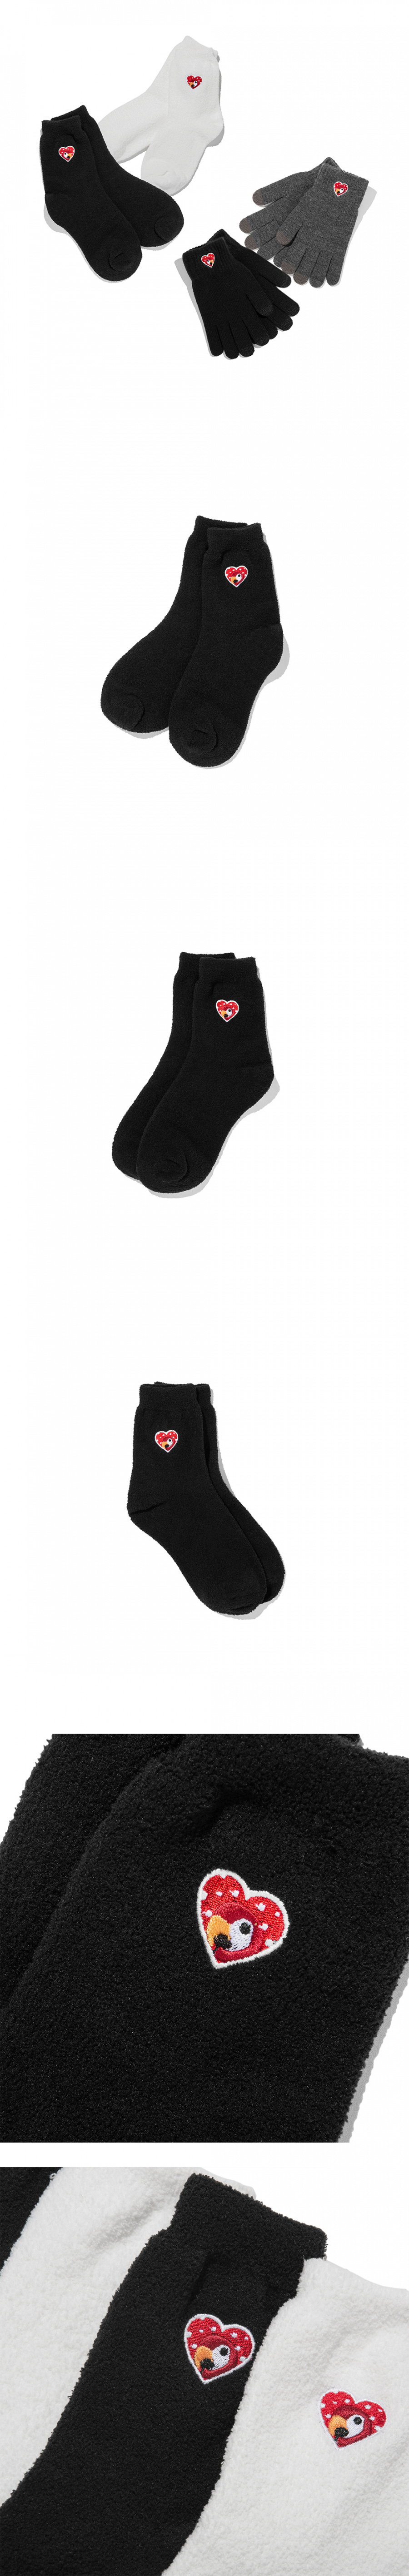 칸코(KANCO) KANCO X-MAS LOGO WARM SOCKS black